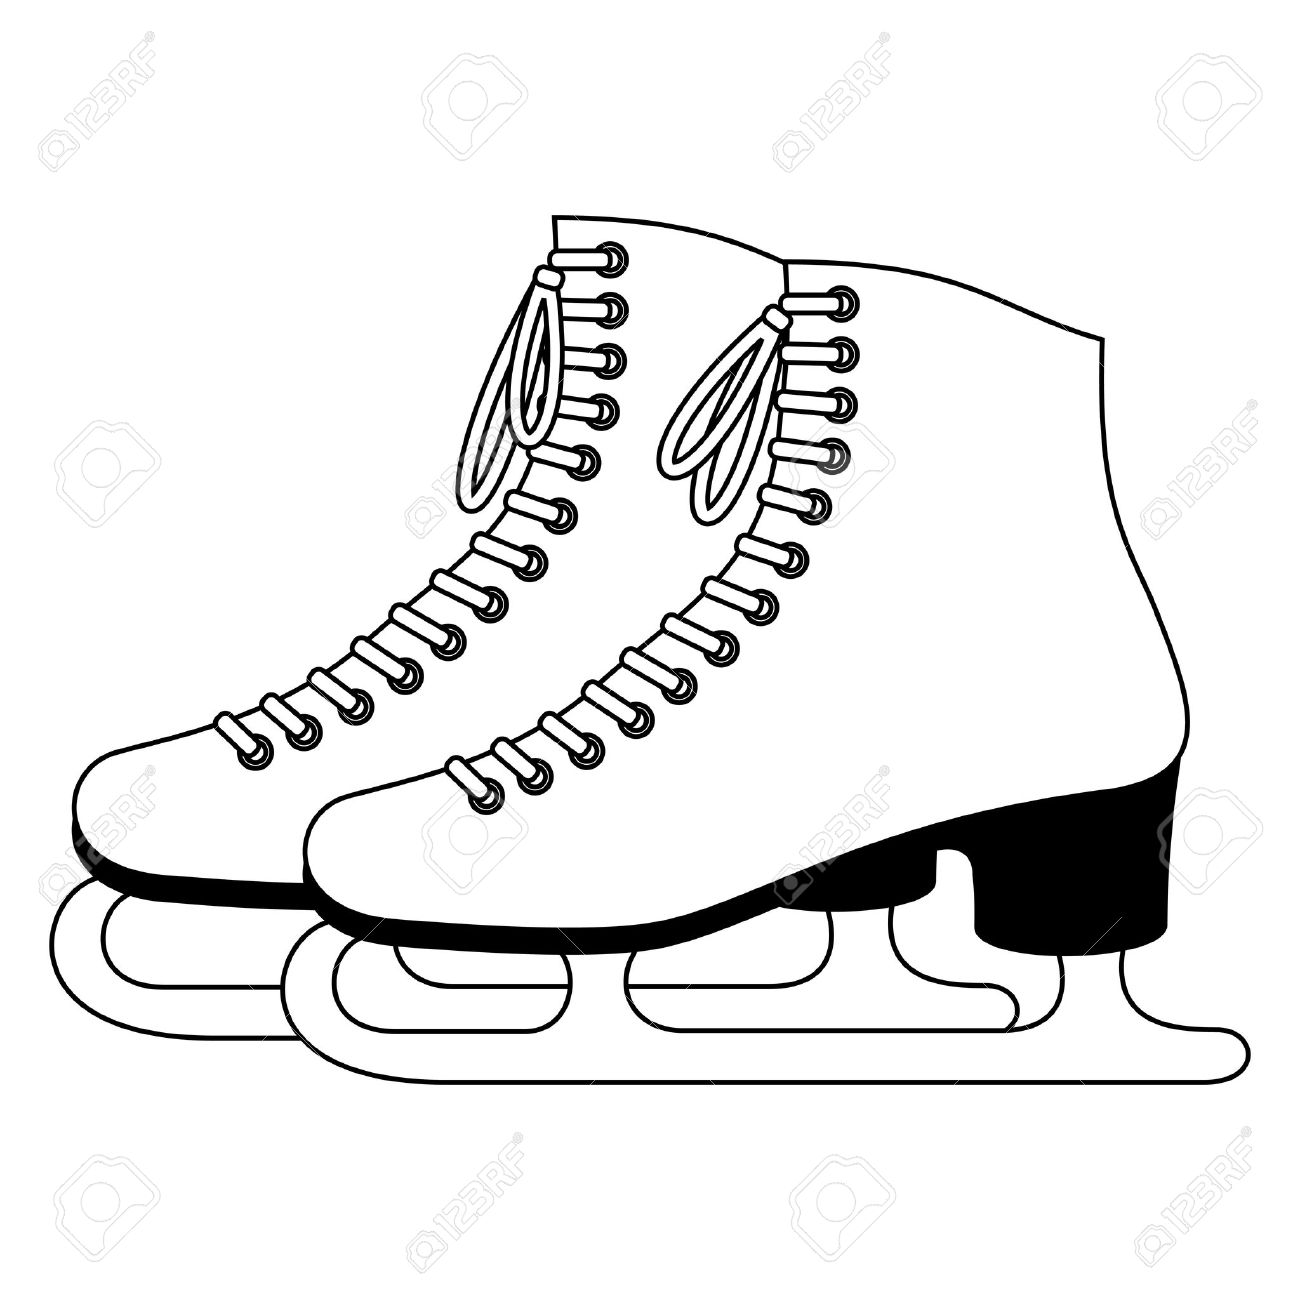 Ice skating pictures clip art .